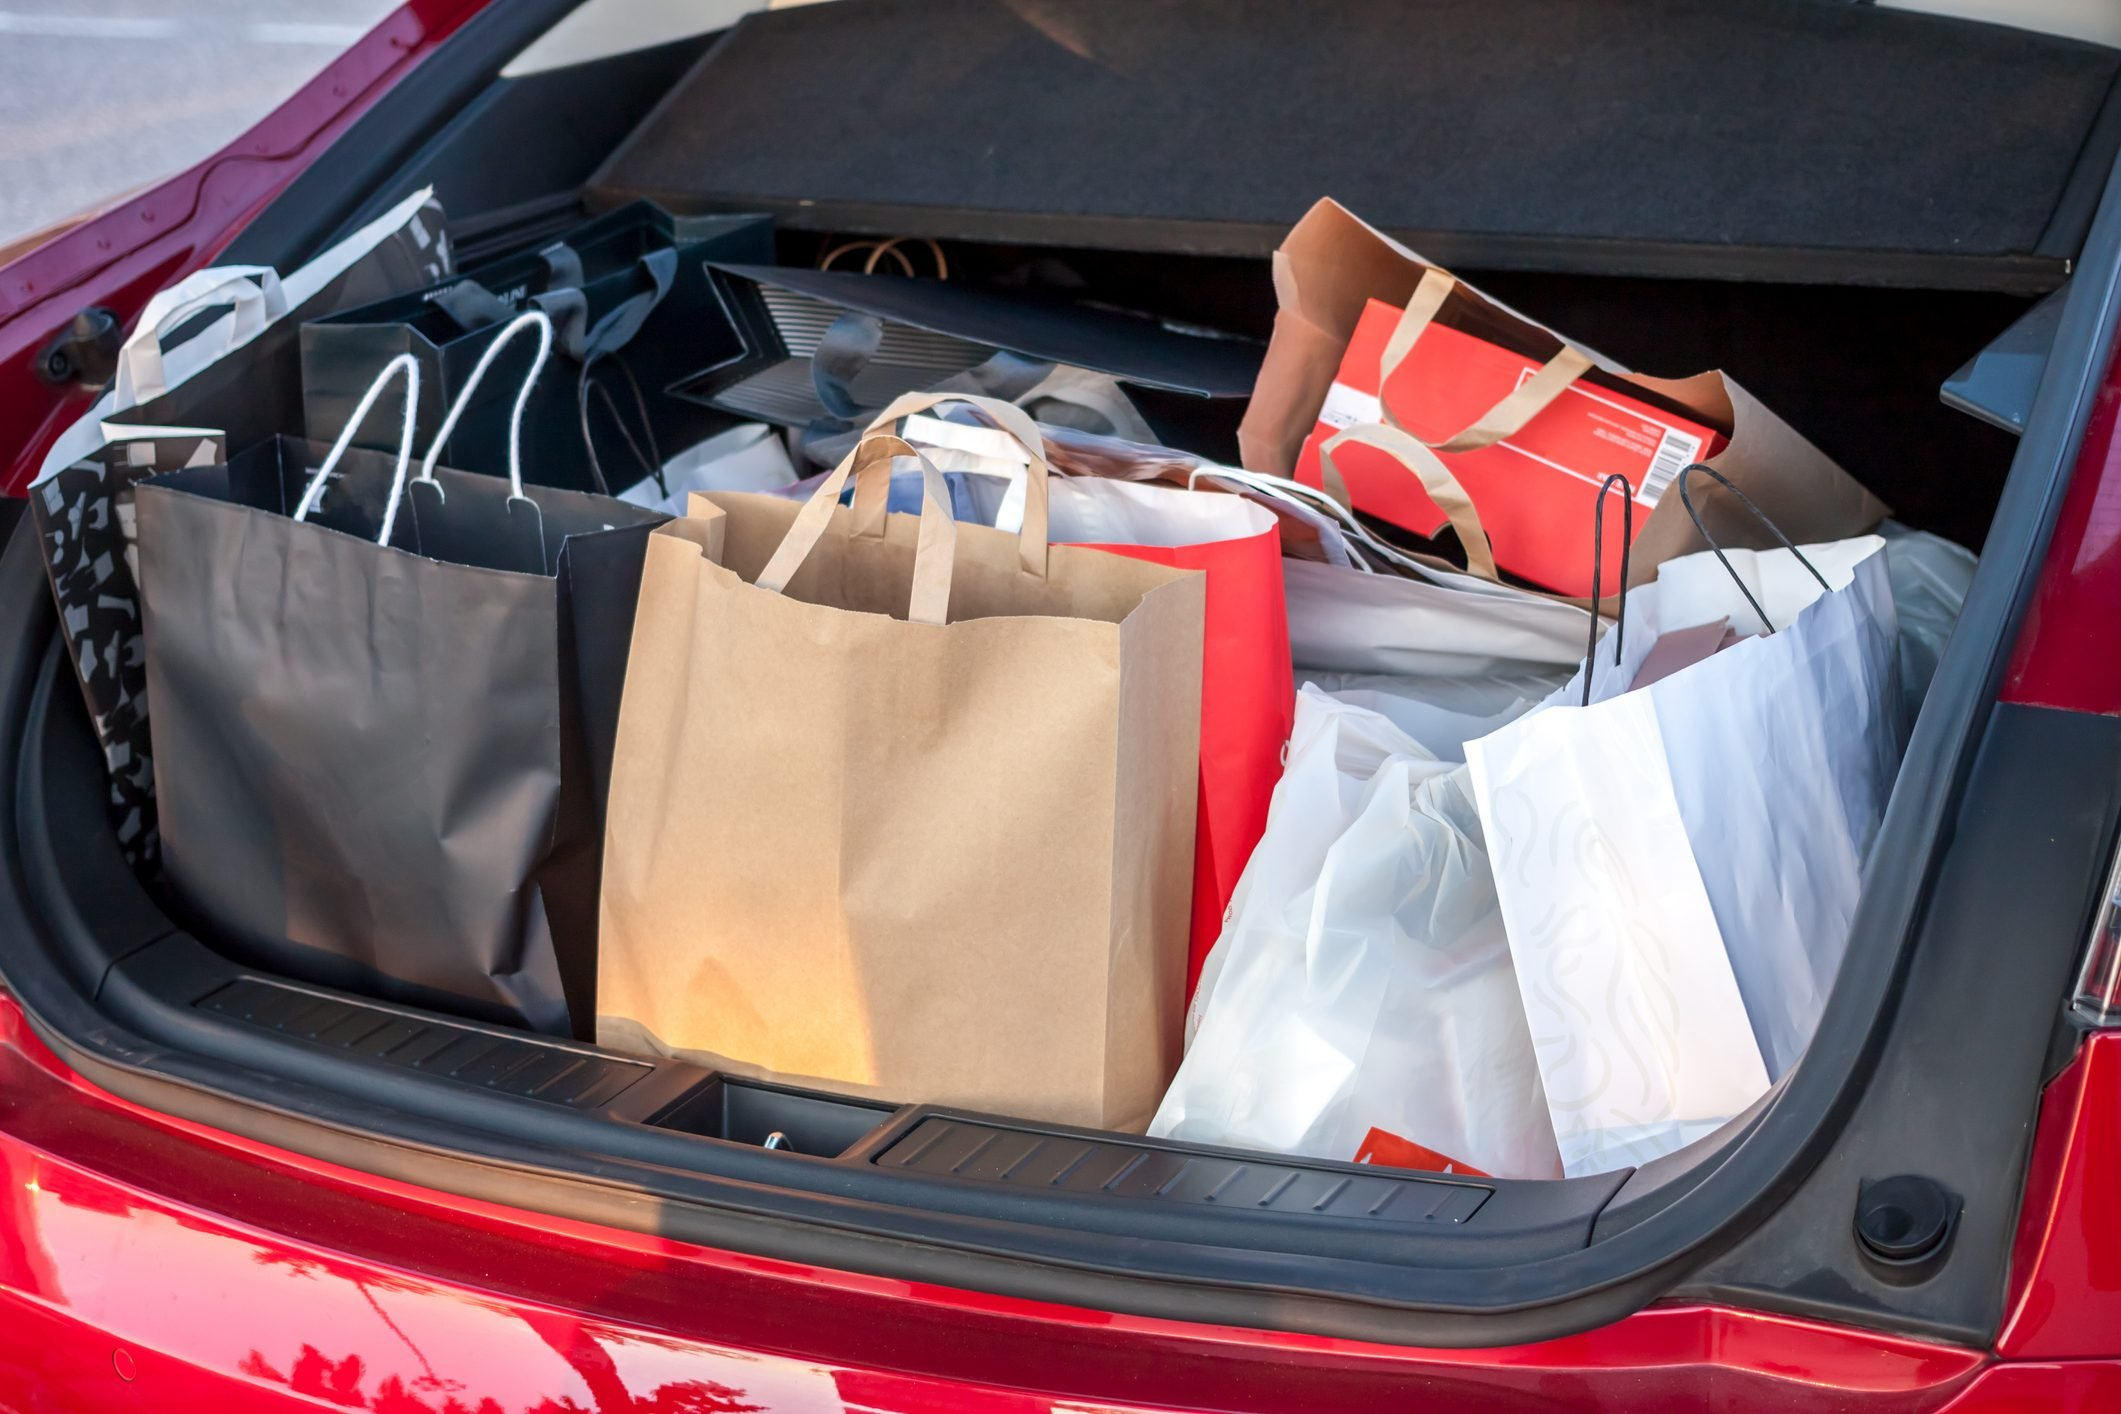 shopping bags in car